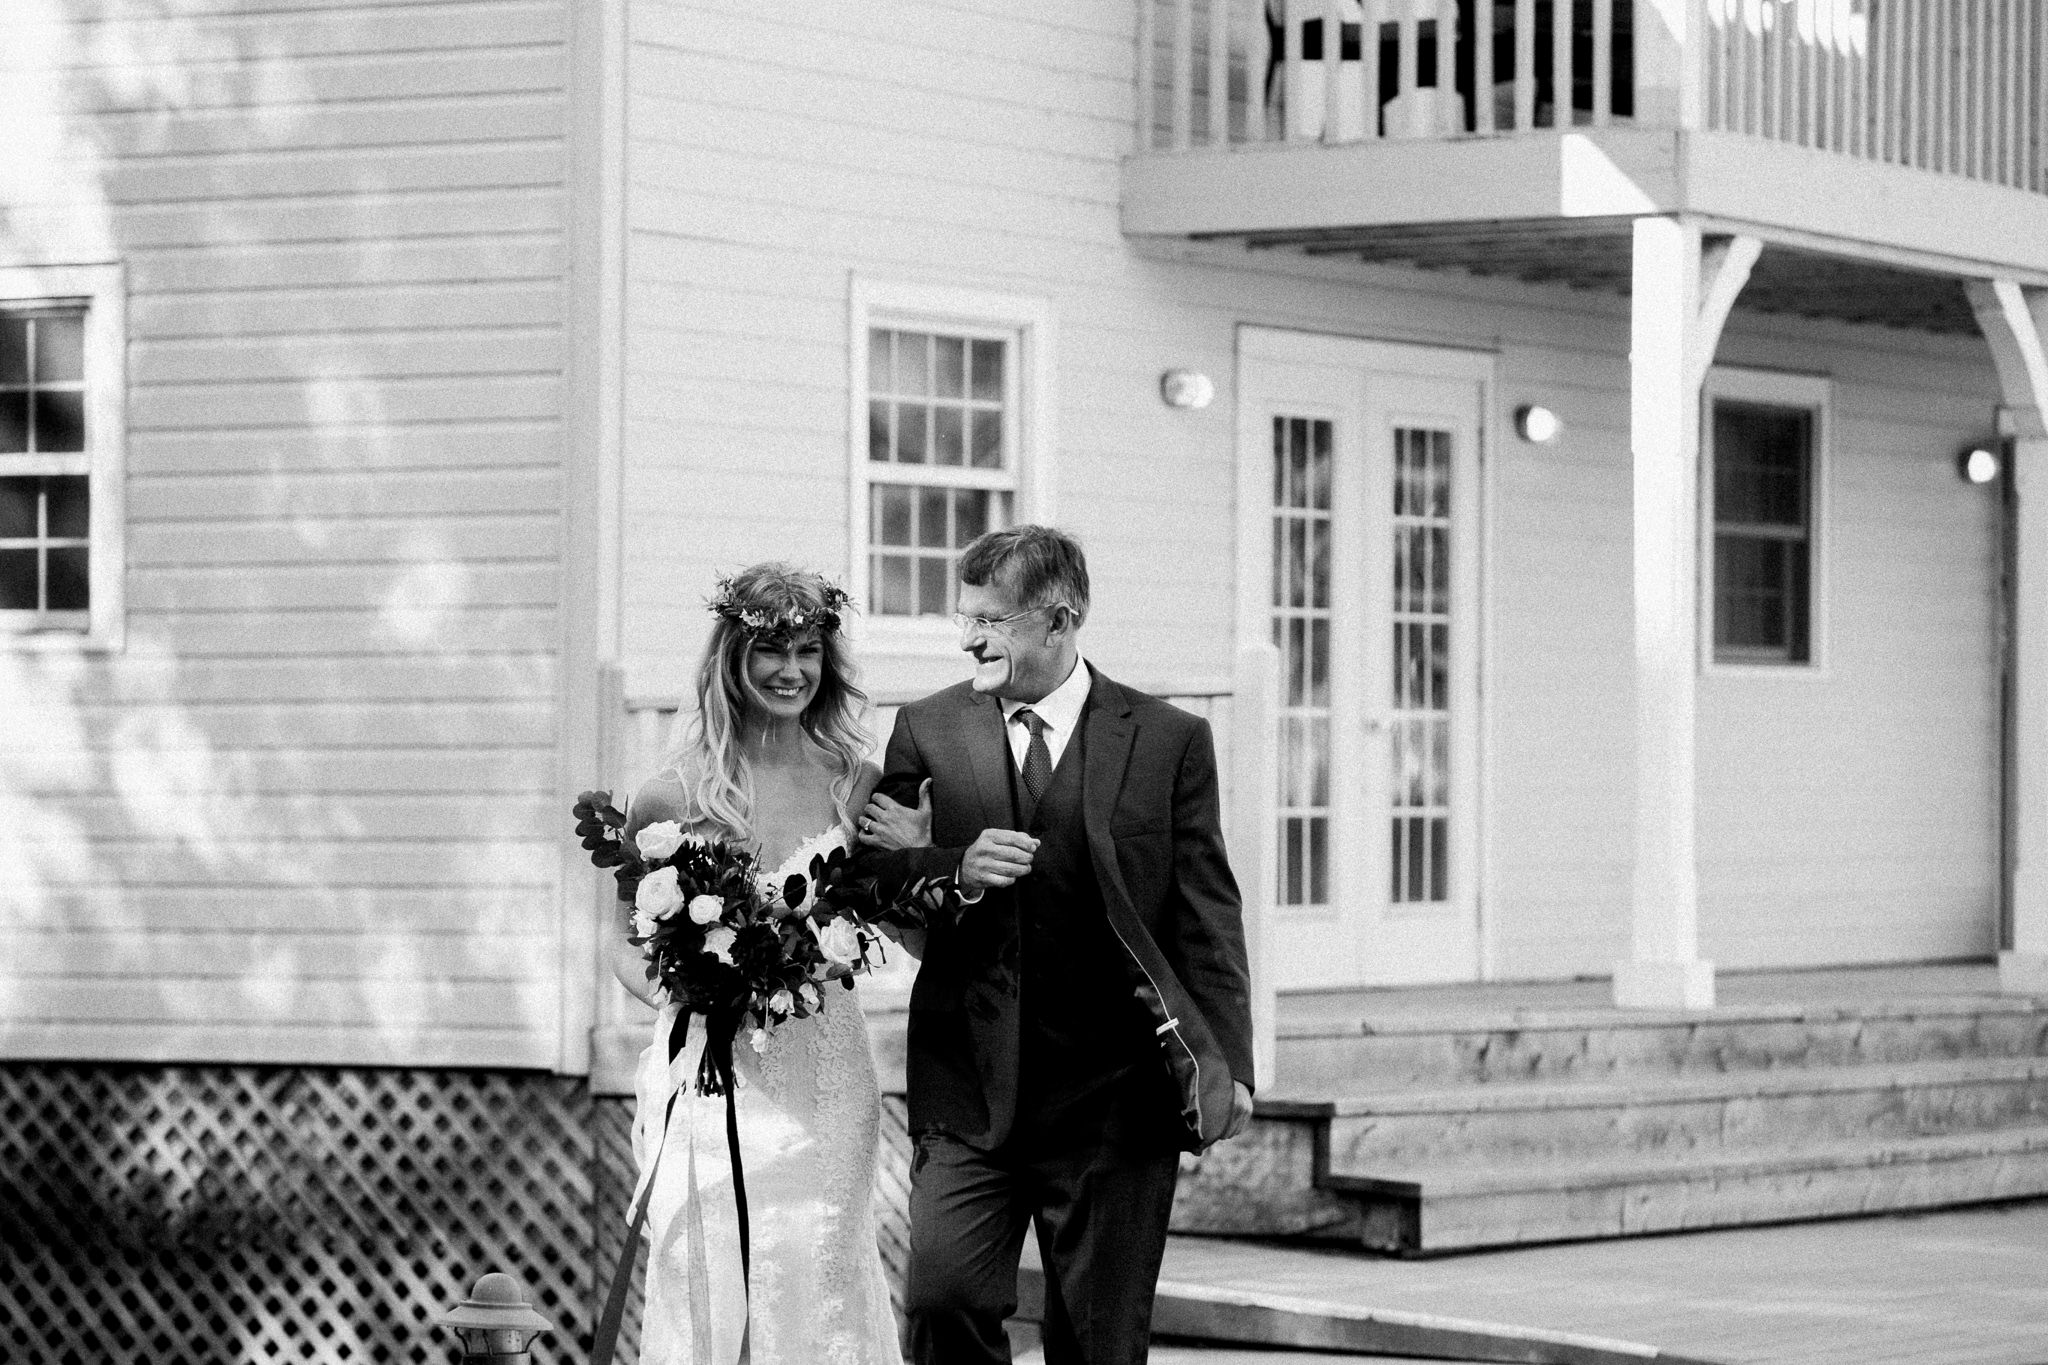 Muskoka lakeside wedding at Port Cunnington Lodge by Max Wong Photo (44)